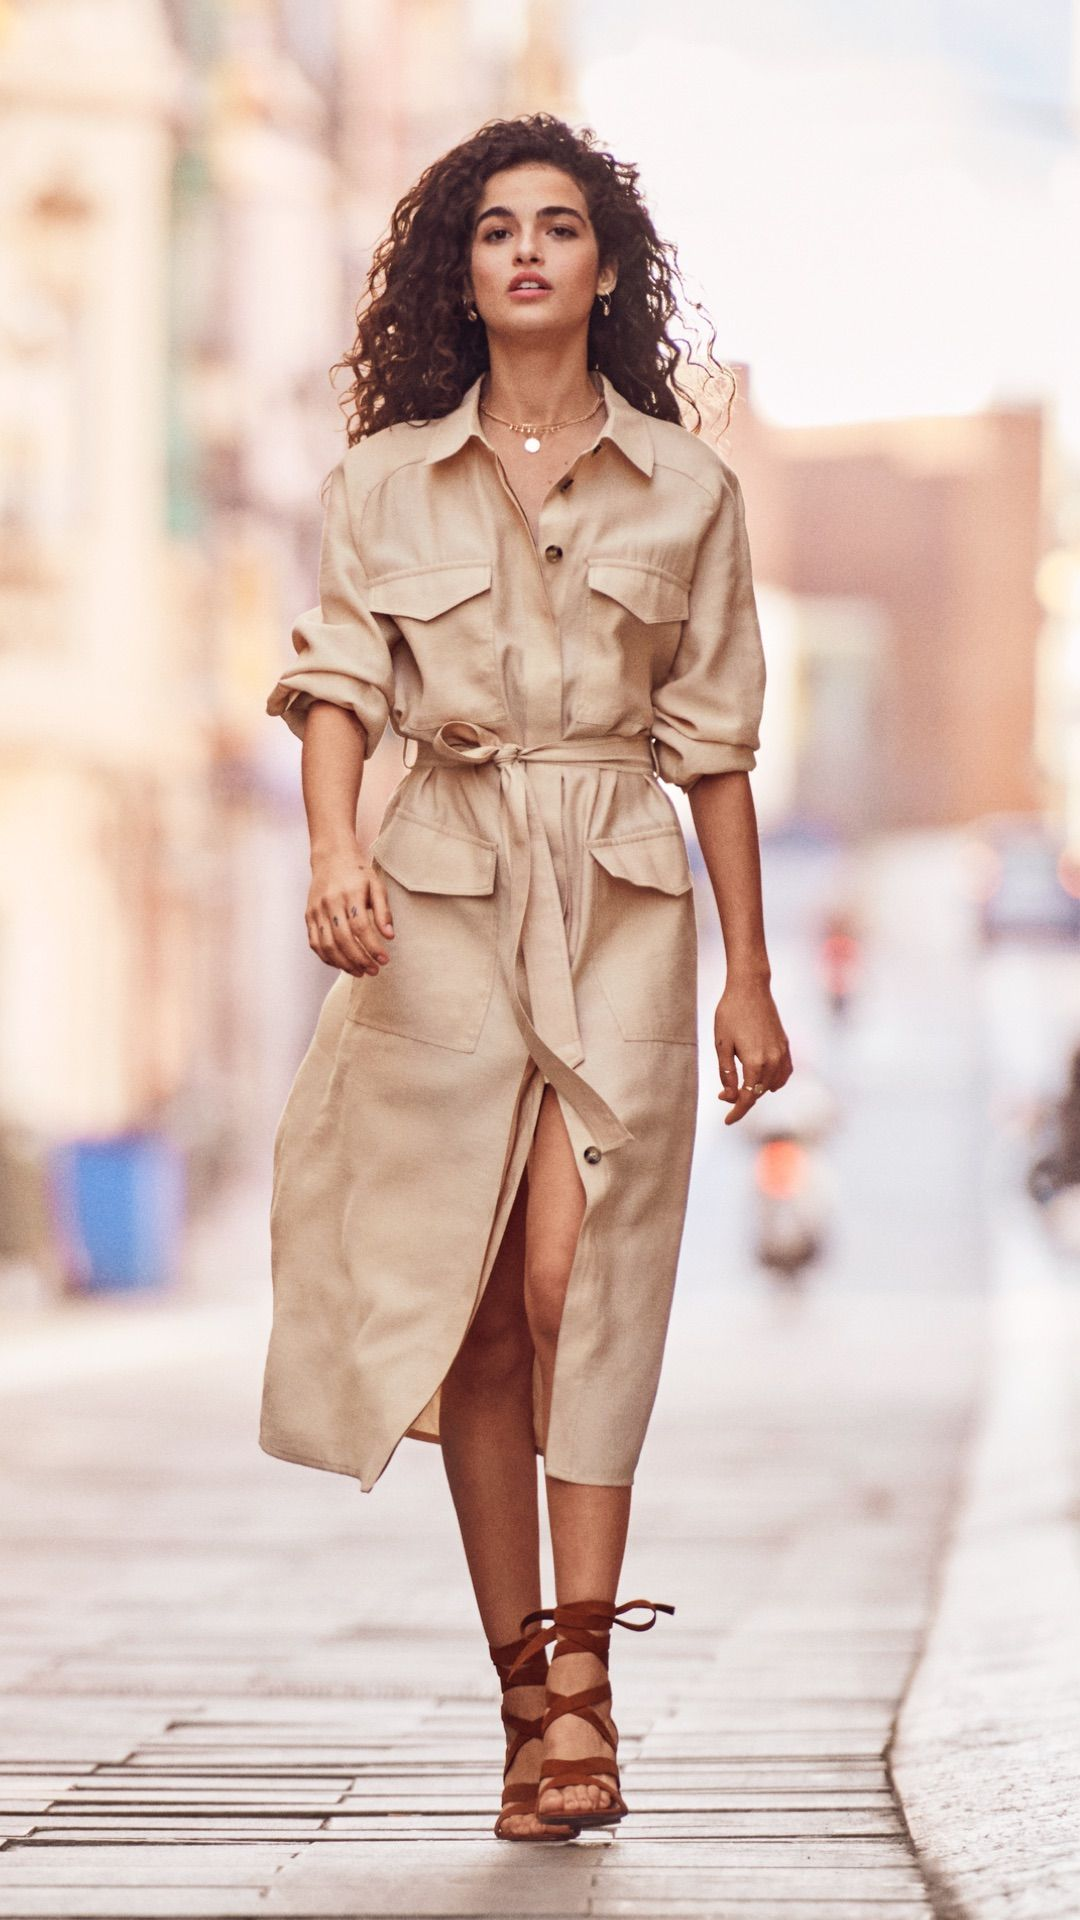 For A Modern Take On A Classic Trend Utility Themes Are Refreshed With A Minimalistic Palette Of White And Tan To Le Fashion Fashion Clothes Women Shirt Dress